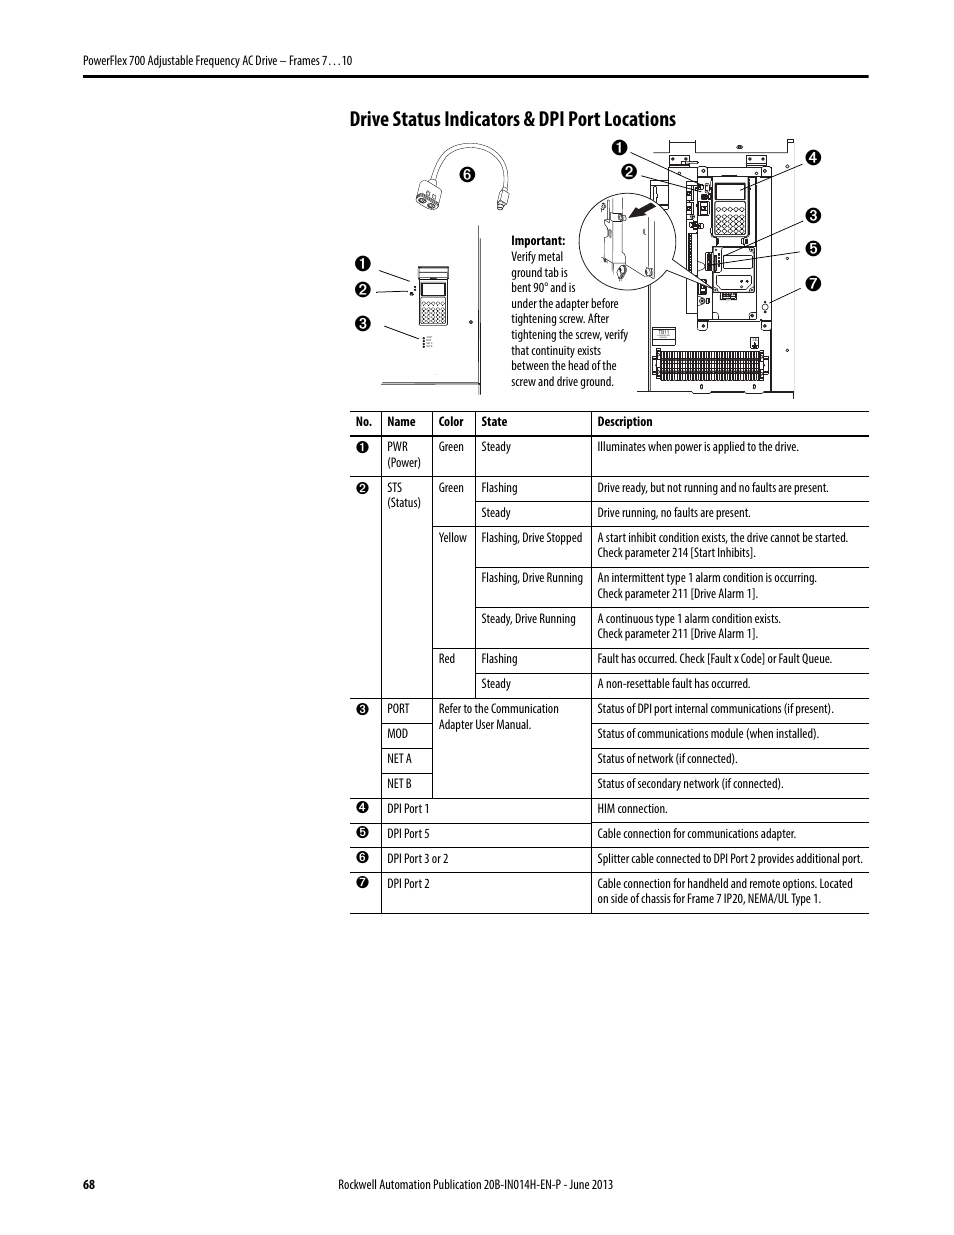 Powerflex 700 Wiring Diagram Besides Allen Bradley Wiring